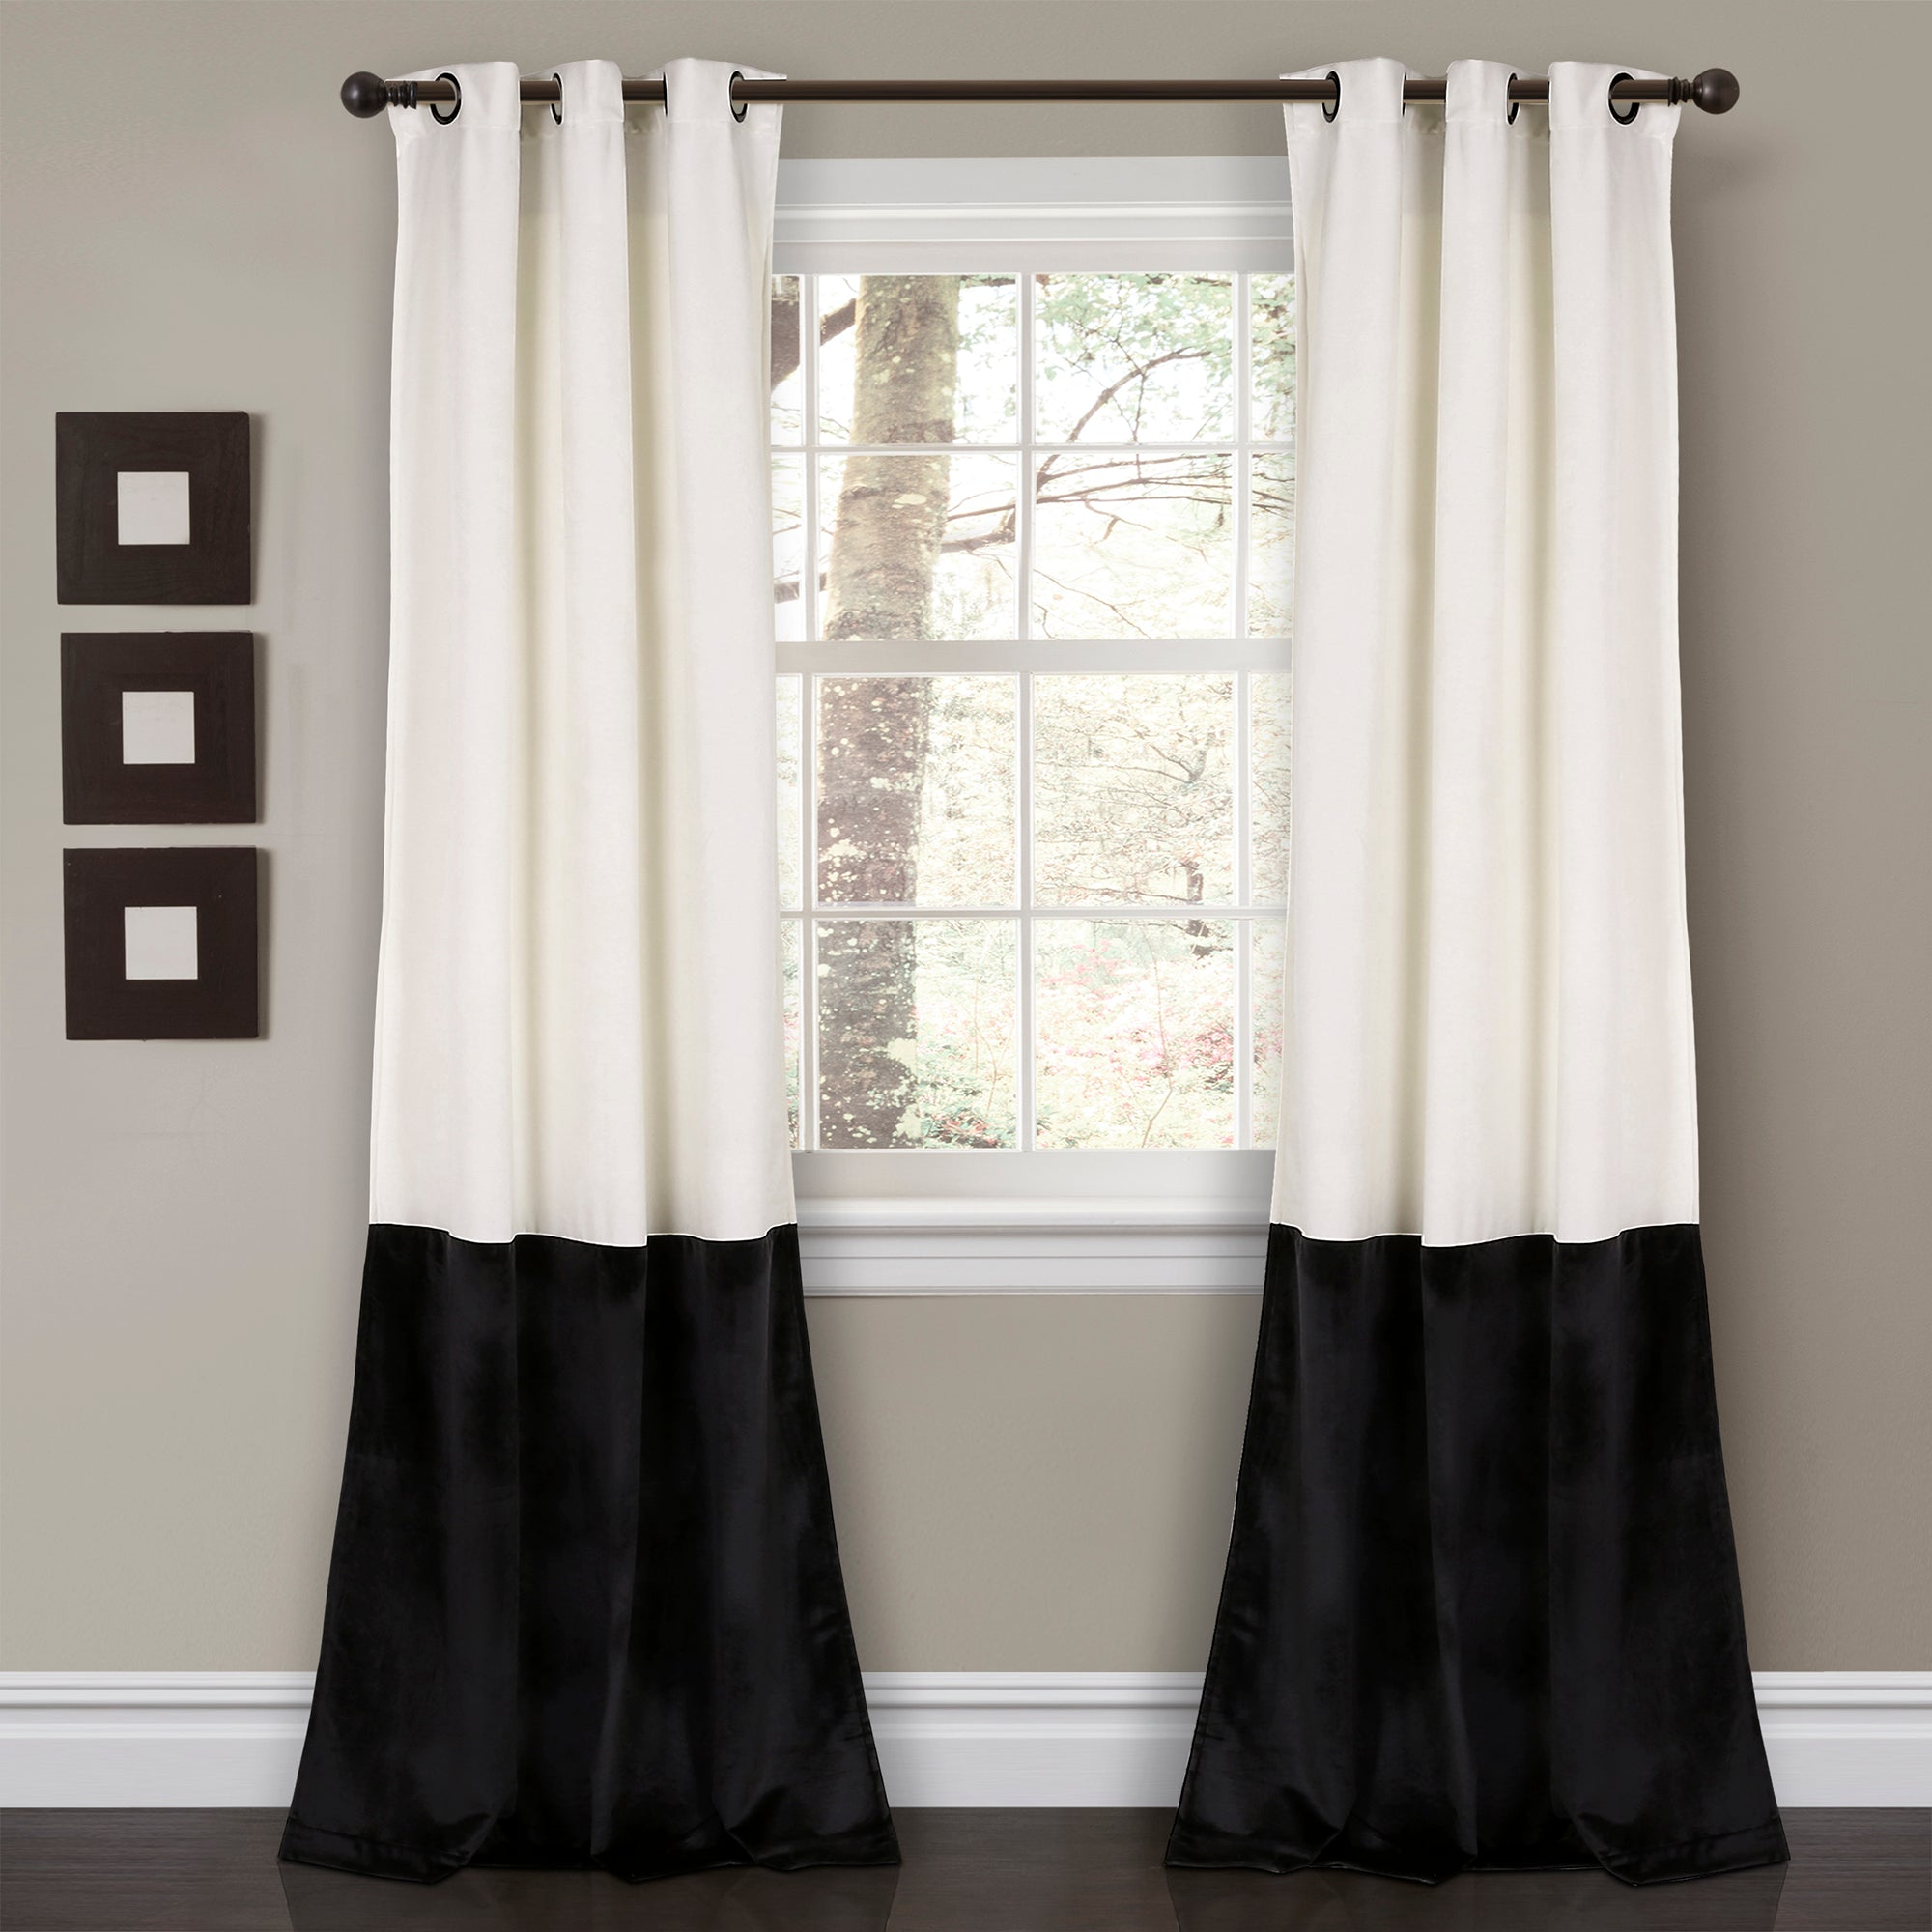 p cheap panels drapes black curtains curtain with a also velvet inch out blackout sheets